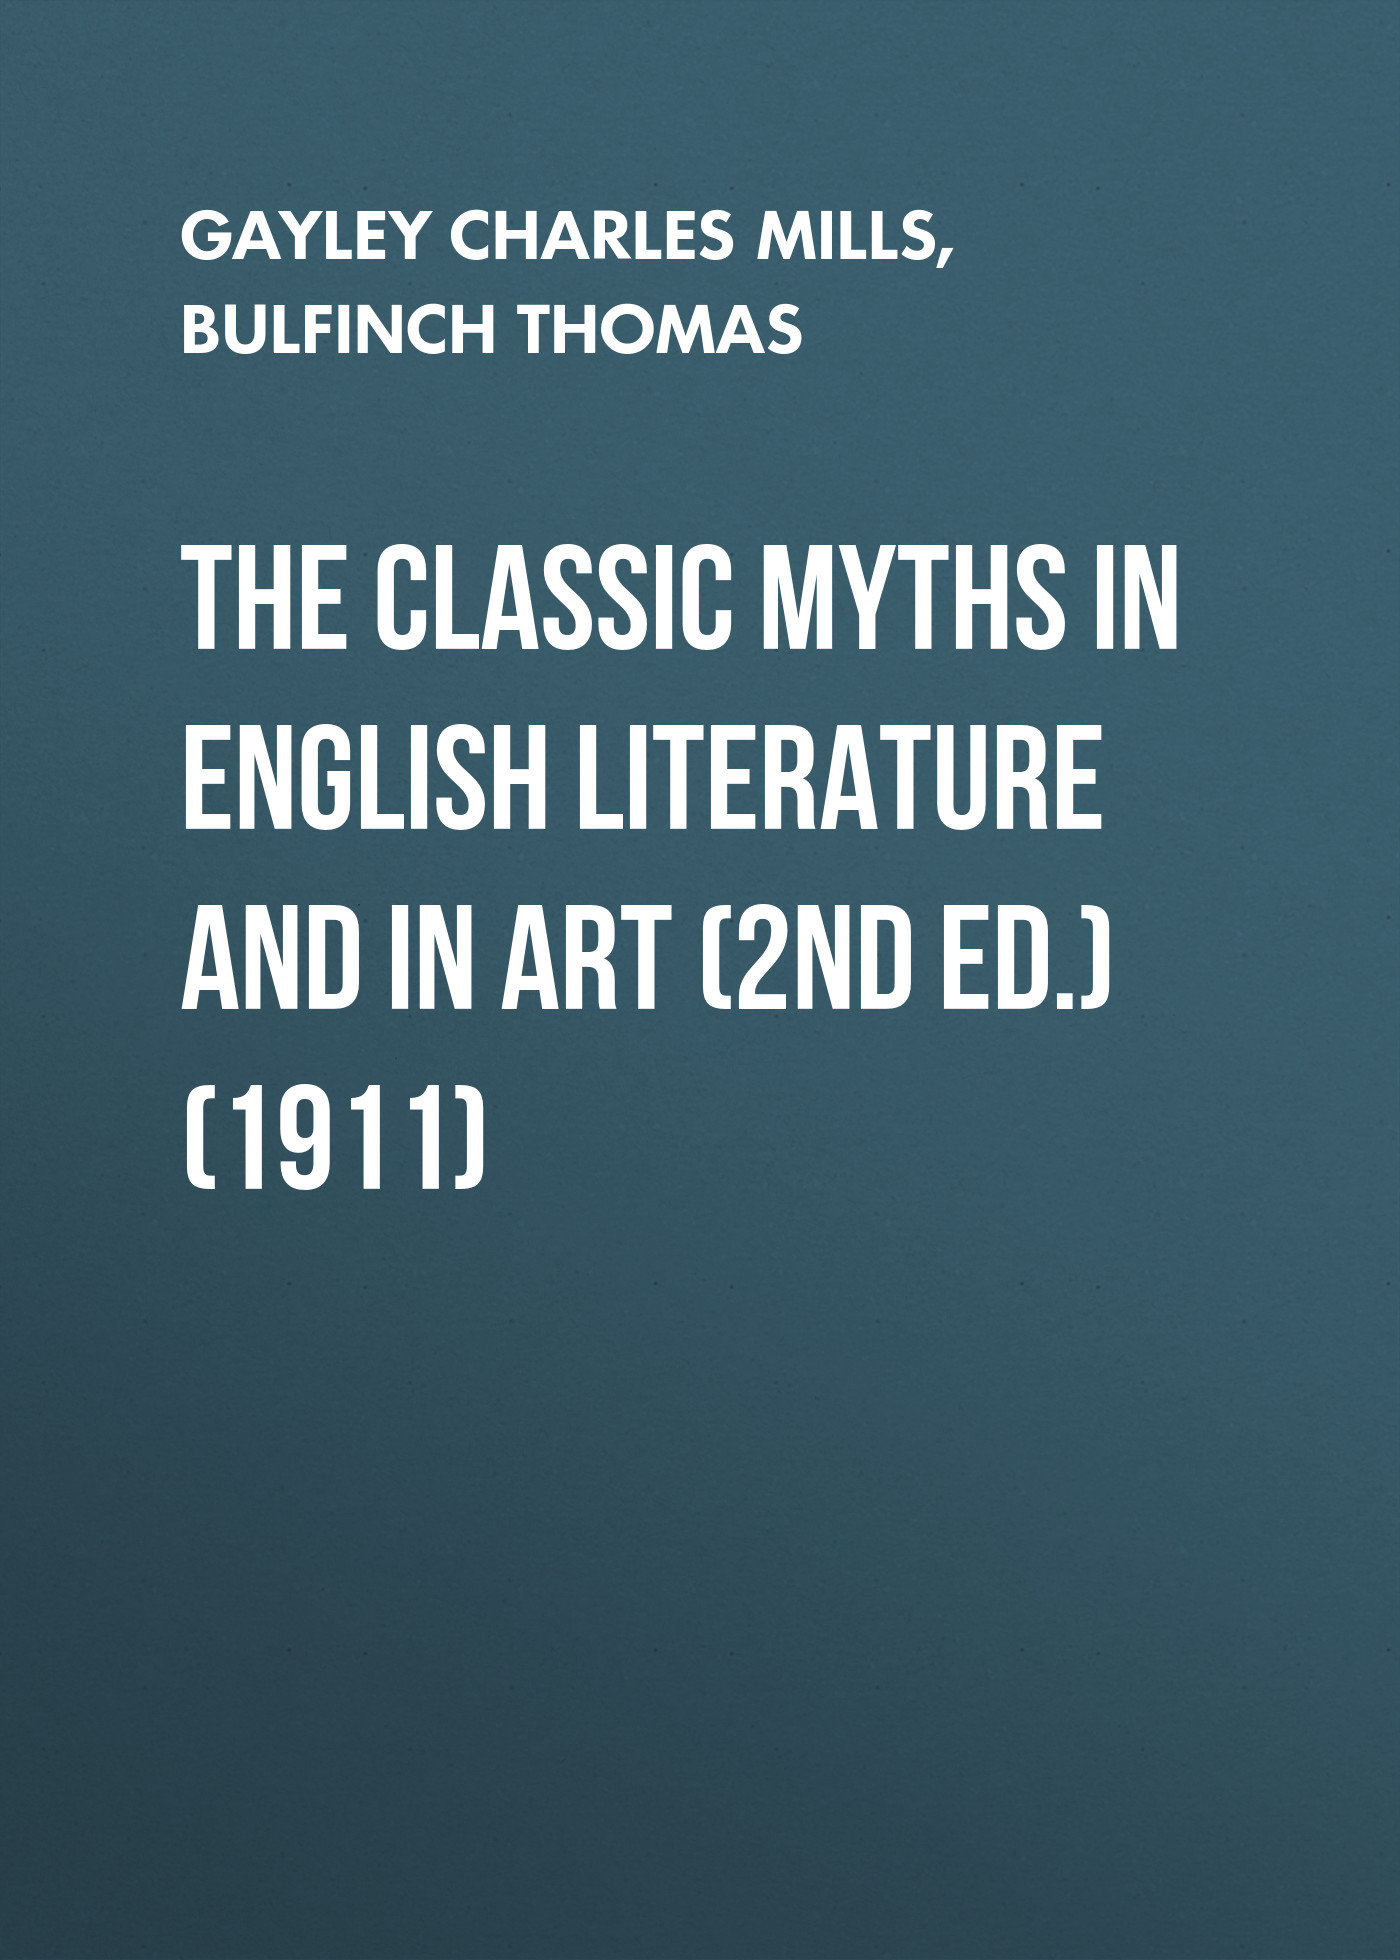 Bulfinch Thomas The Classic Myths in English Literature and in Art (2nd ed.) (1911)